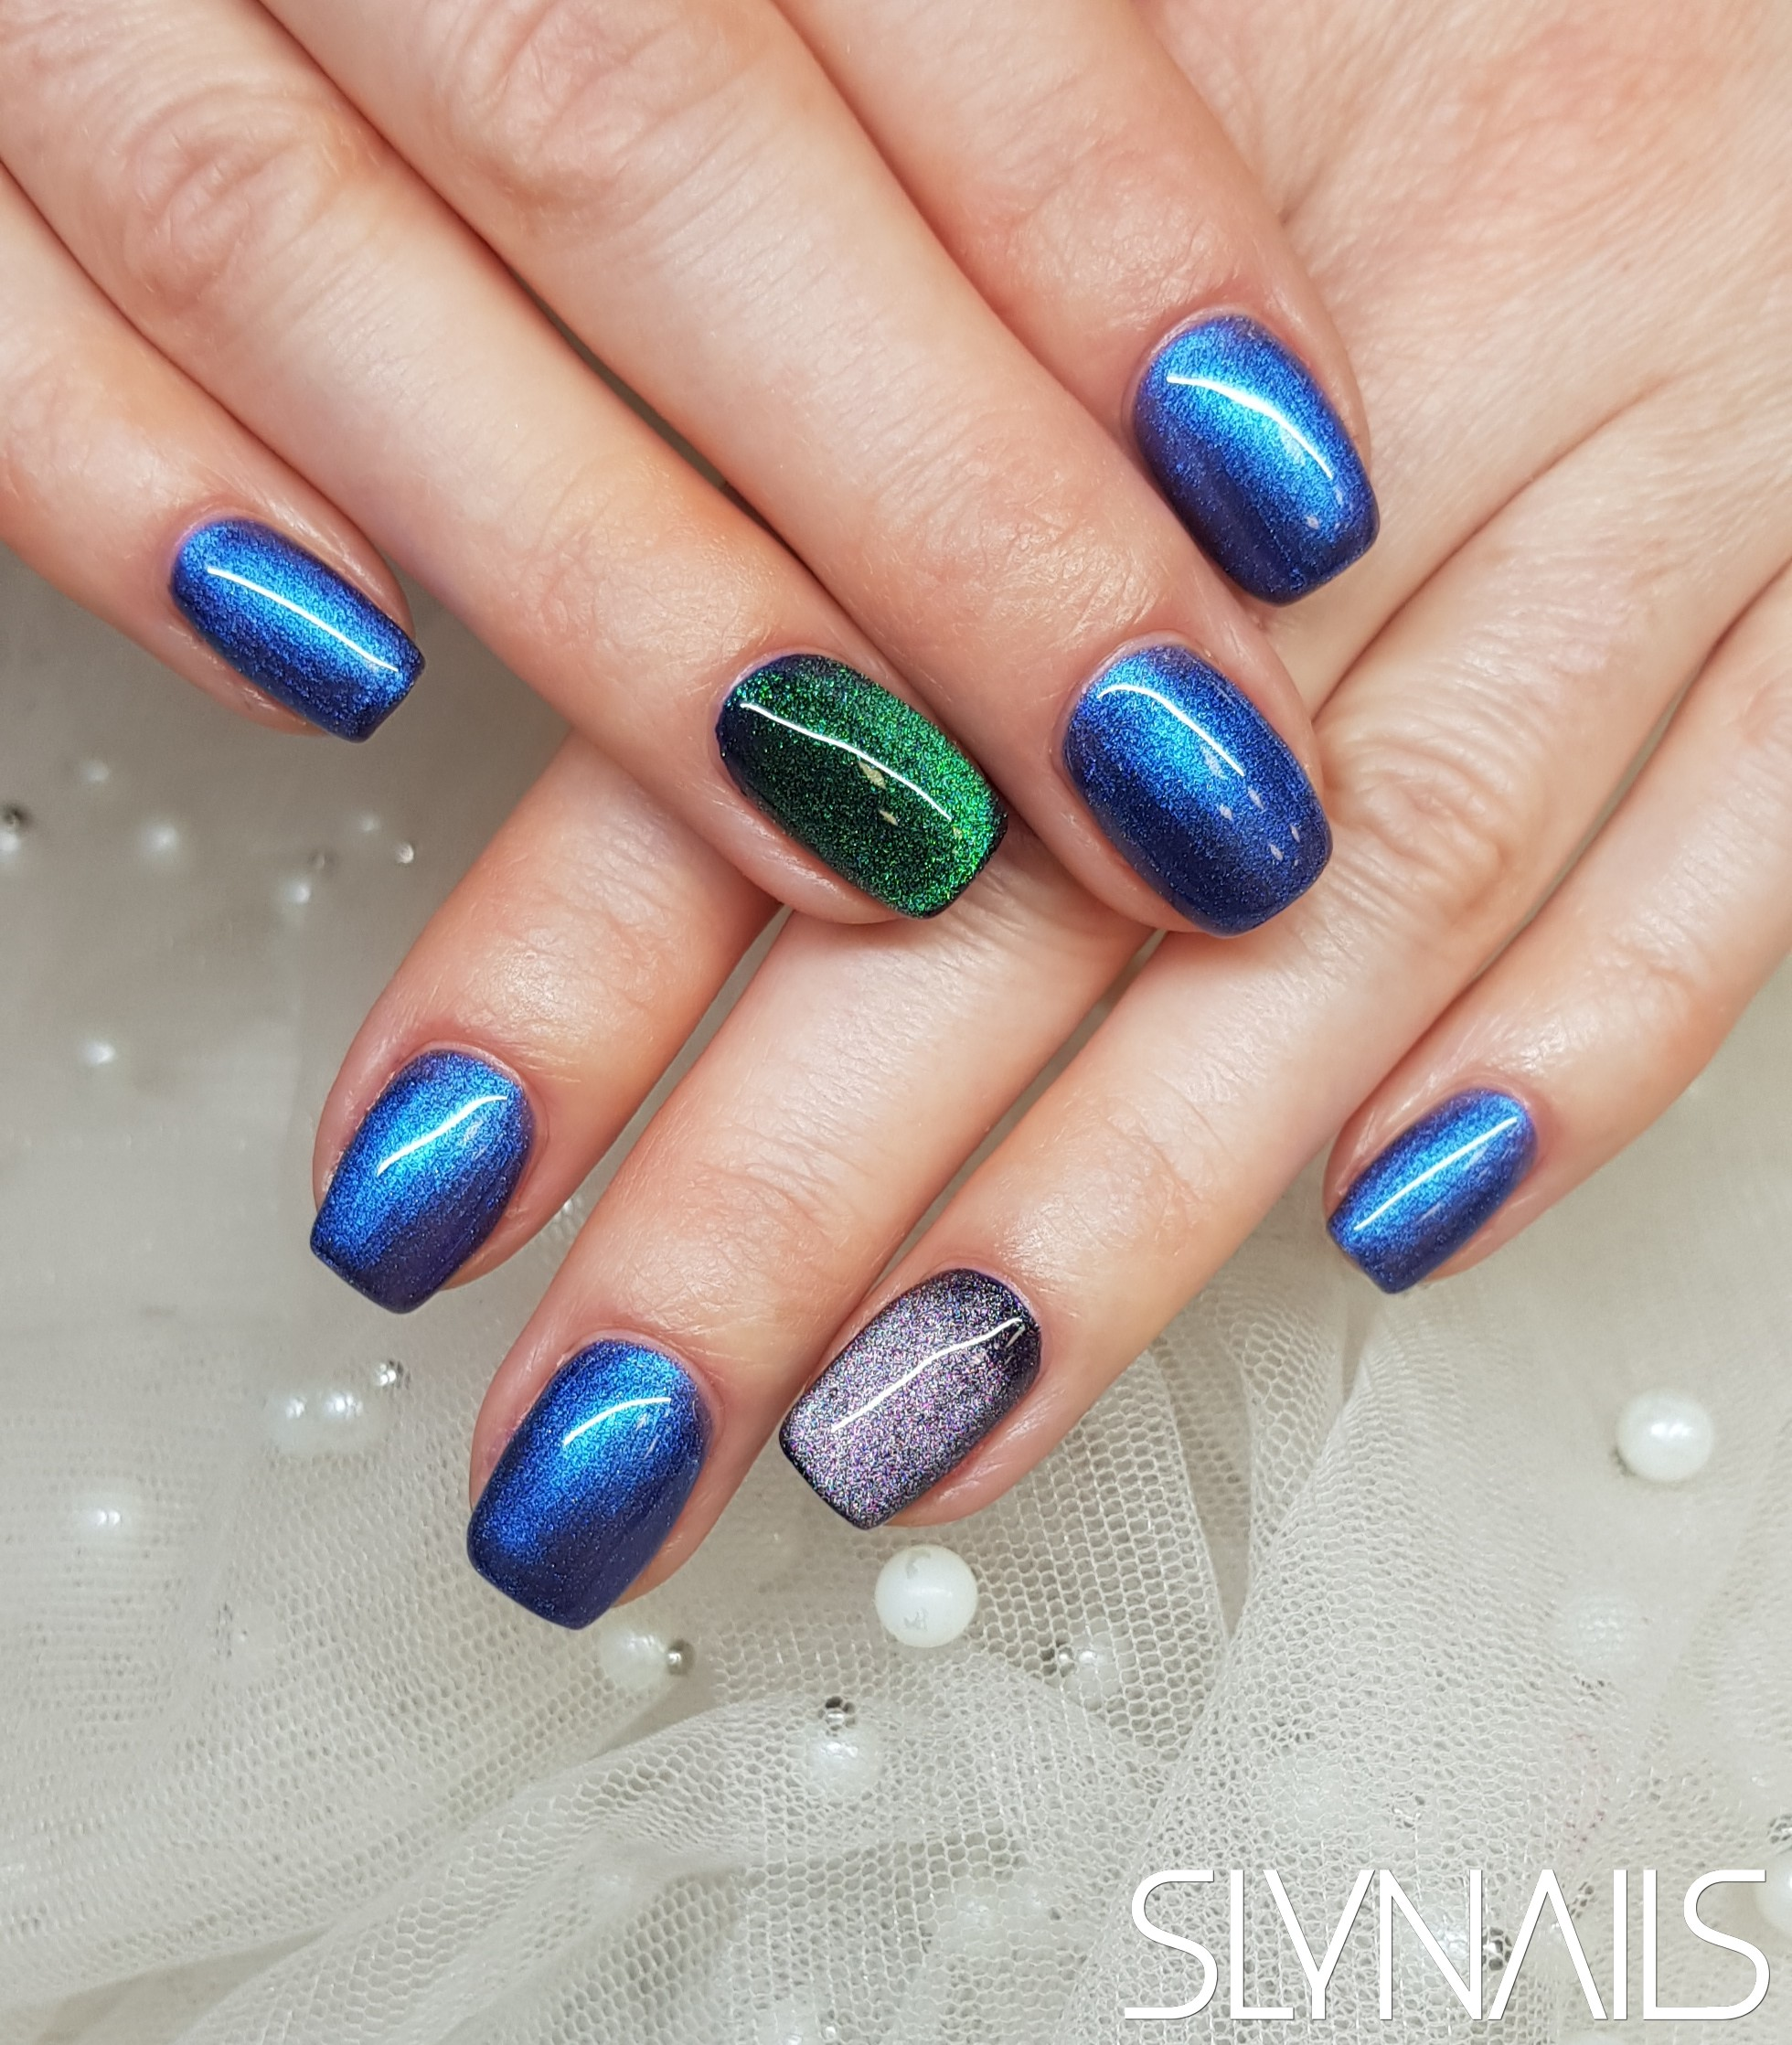 Gel-lac (gel polish), Blue, Purple, Green, Magnetic, One color, Square